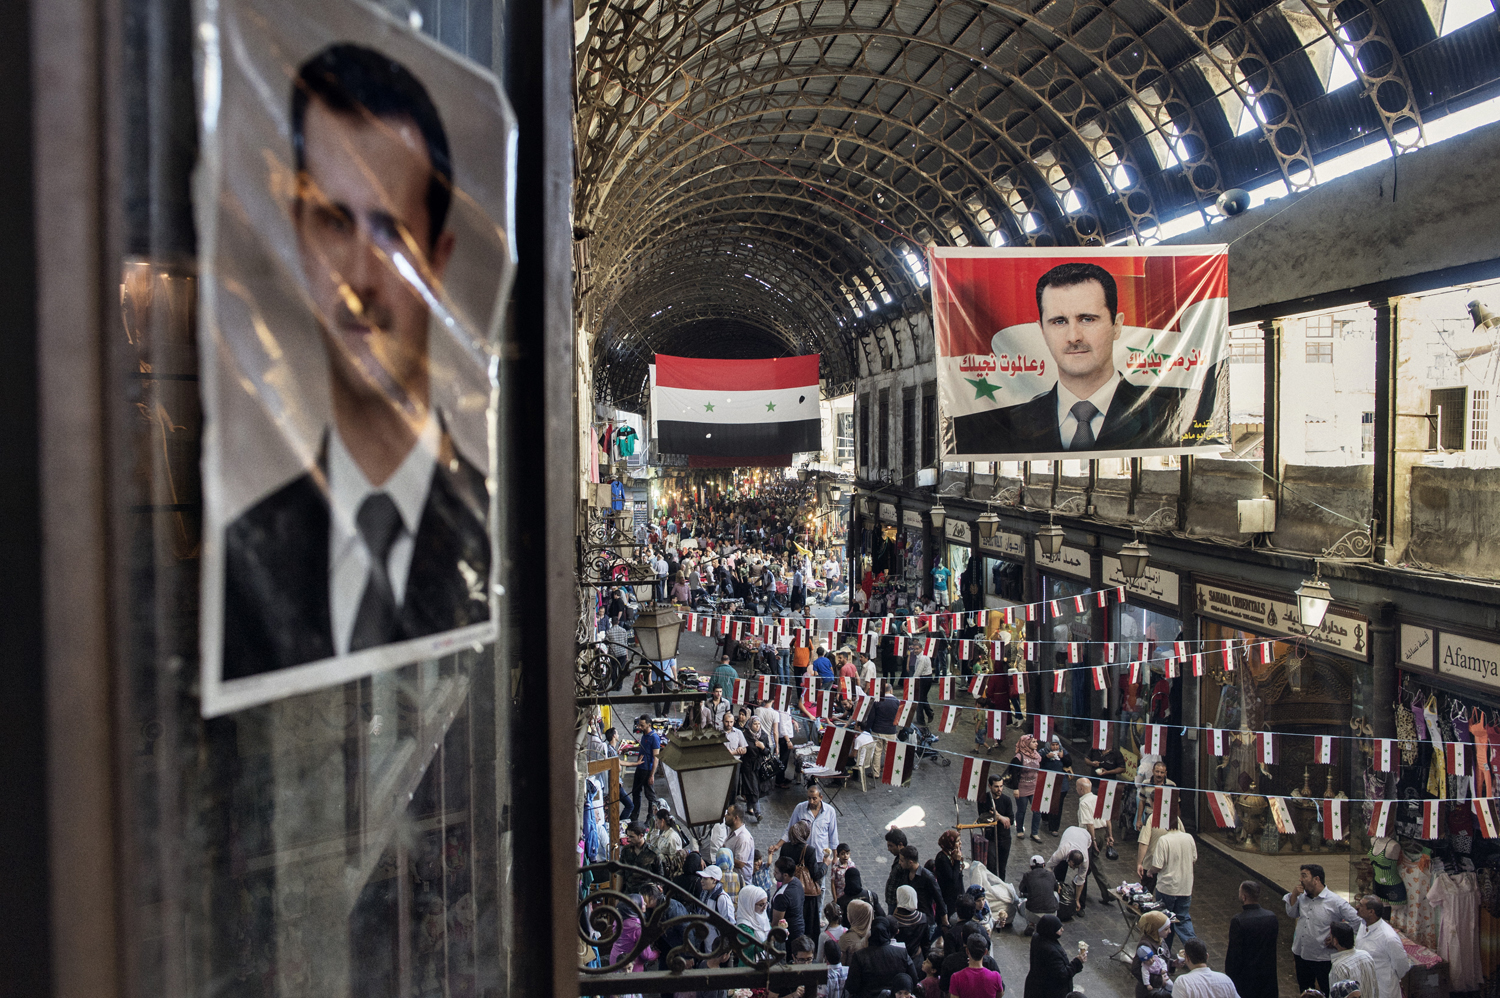 Election banners promoting Assad in the upcoming presidential elections covered a market in Damascus. May 15, 2014.